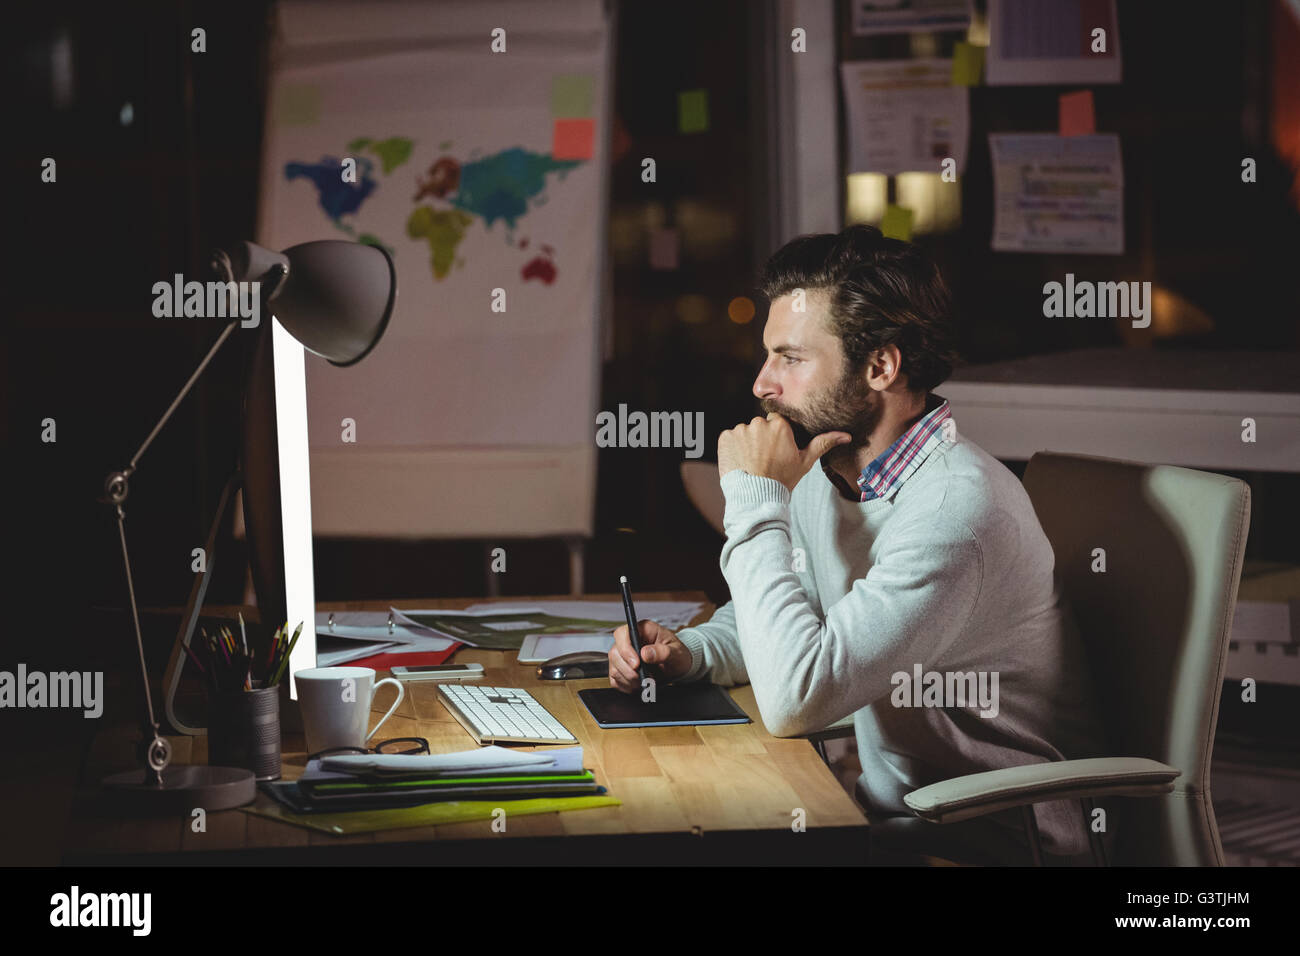 Concentrated man front of computer - Stock Image